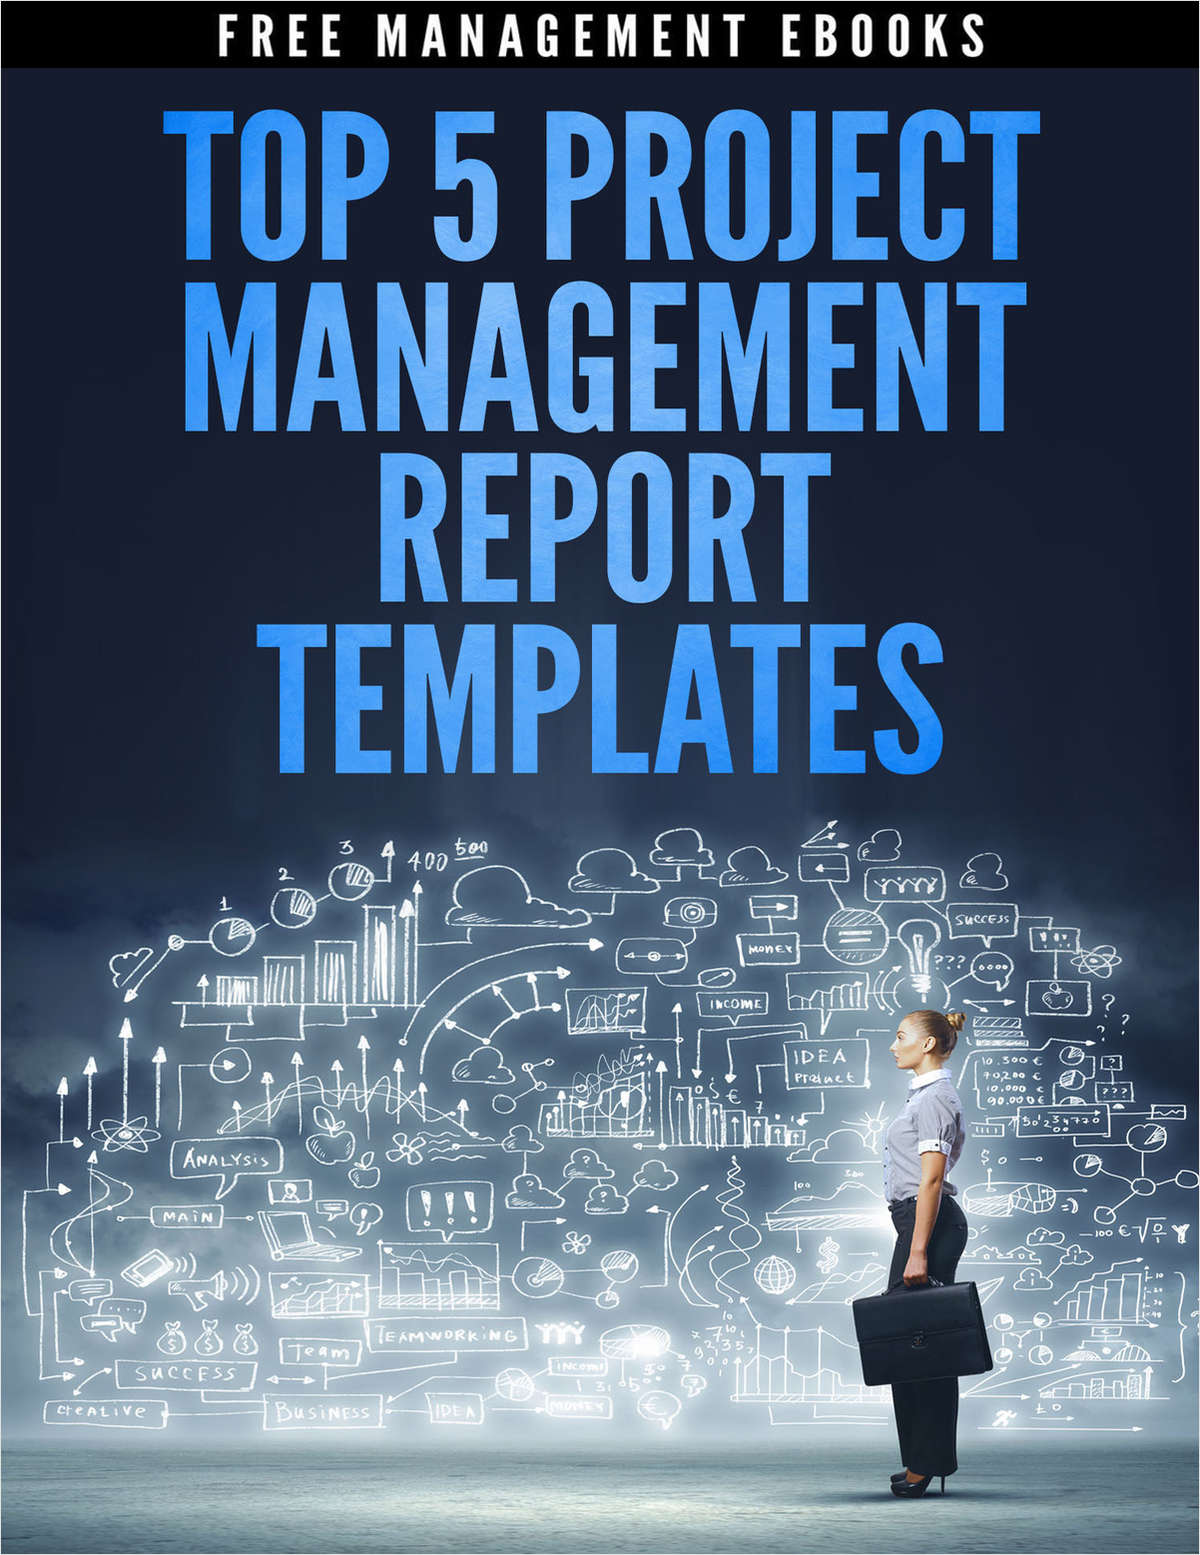 Top 5 Project Management Report Templates